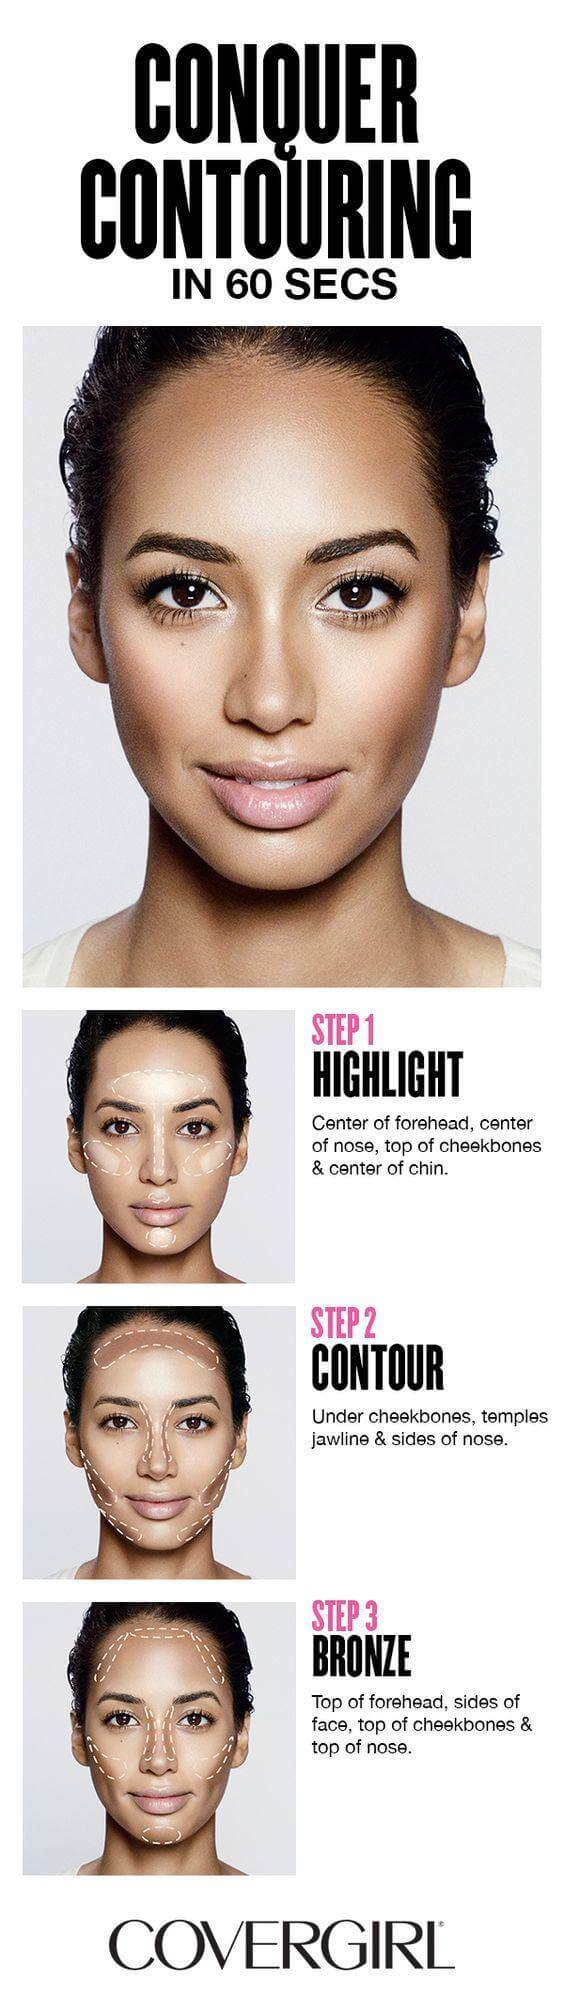 Contouring and highlighting may seem intimidating, but it really doesn't have to be. Simply follow these guidelines to achieve those chiseled cheekbones that most girls can only dream of!